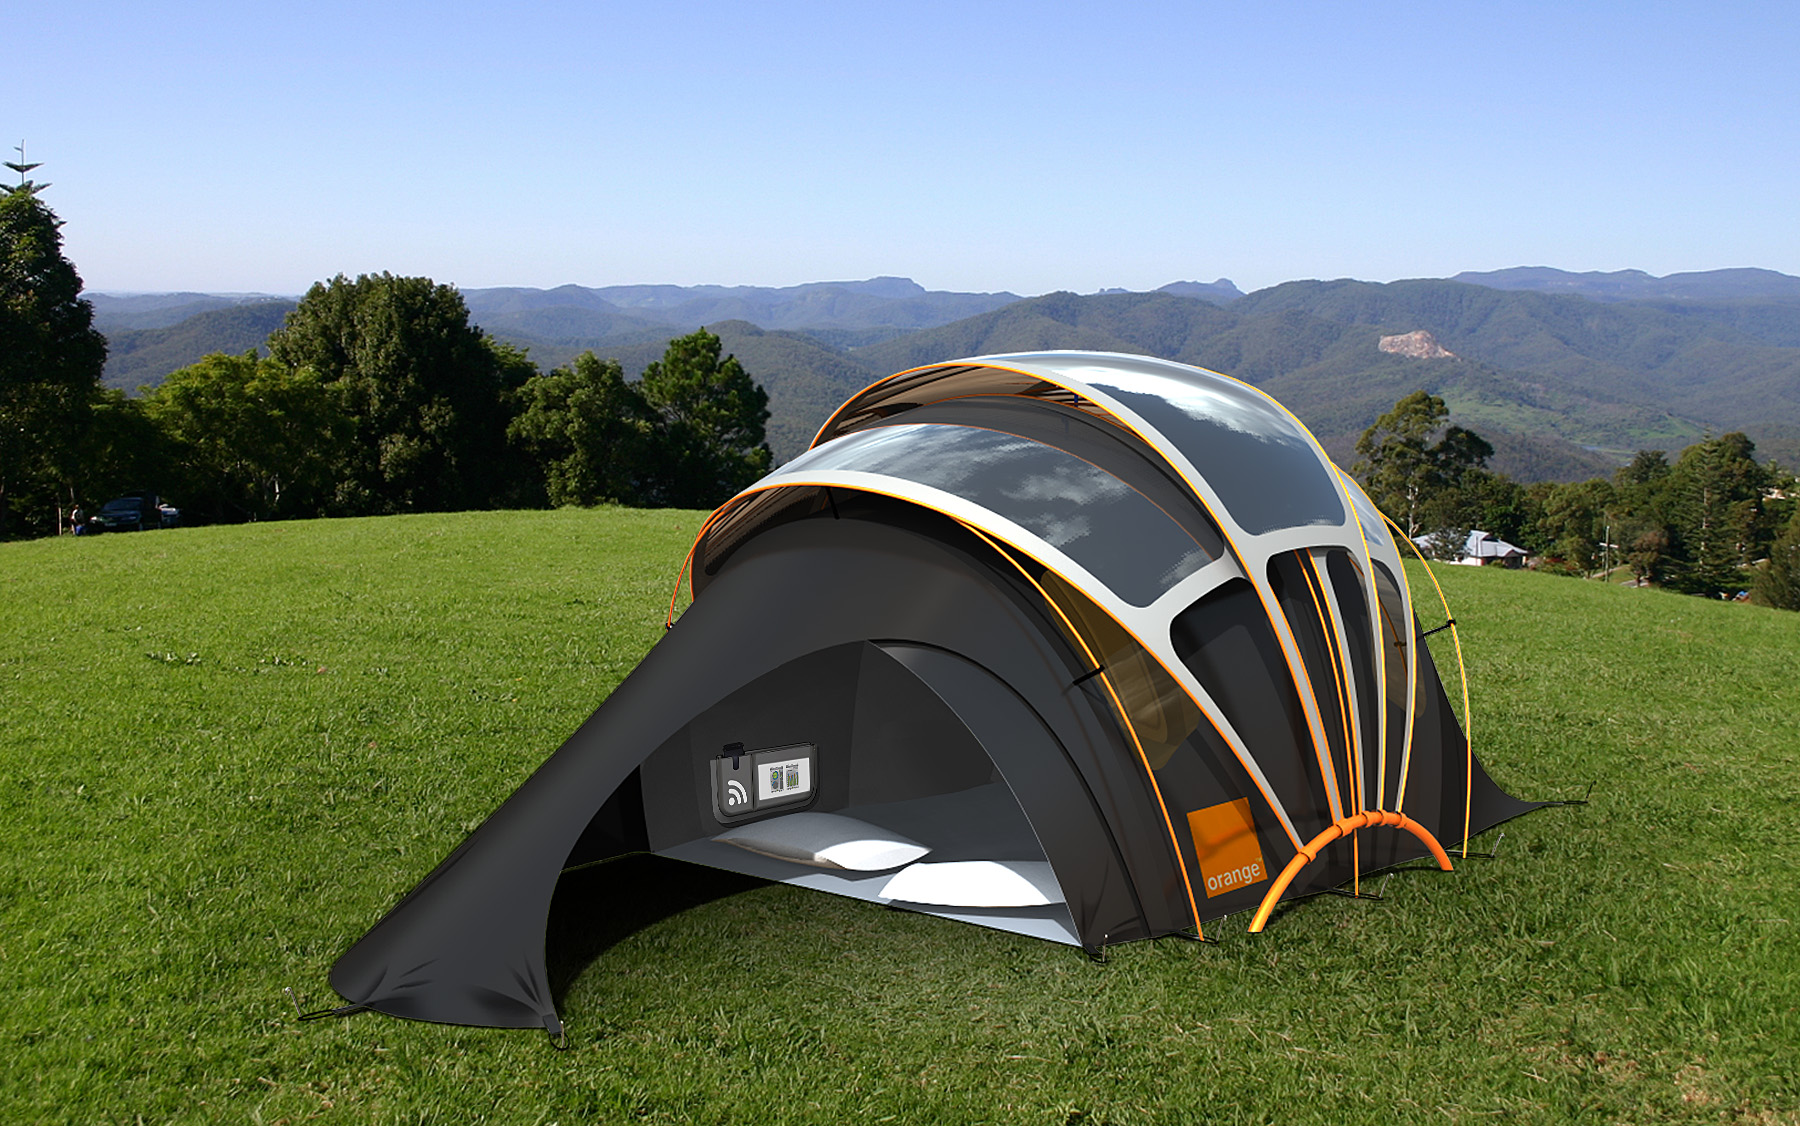 This 4-person solar tent is one of the ultimate green c&ing gadgets! Solar cells built into the tent gather energy during the day so you can charge ... : best tent - memphite.com